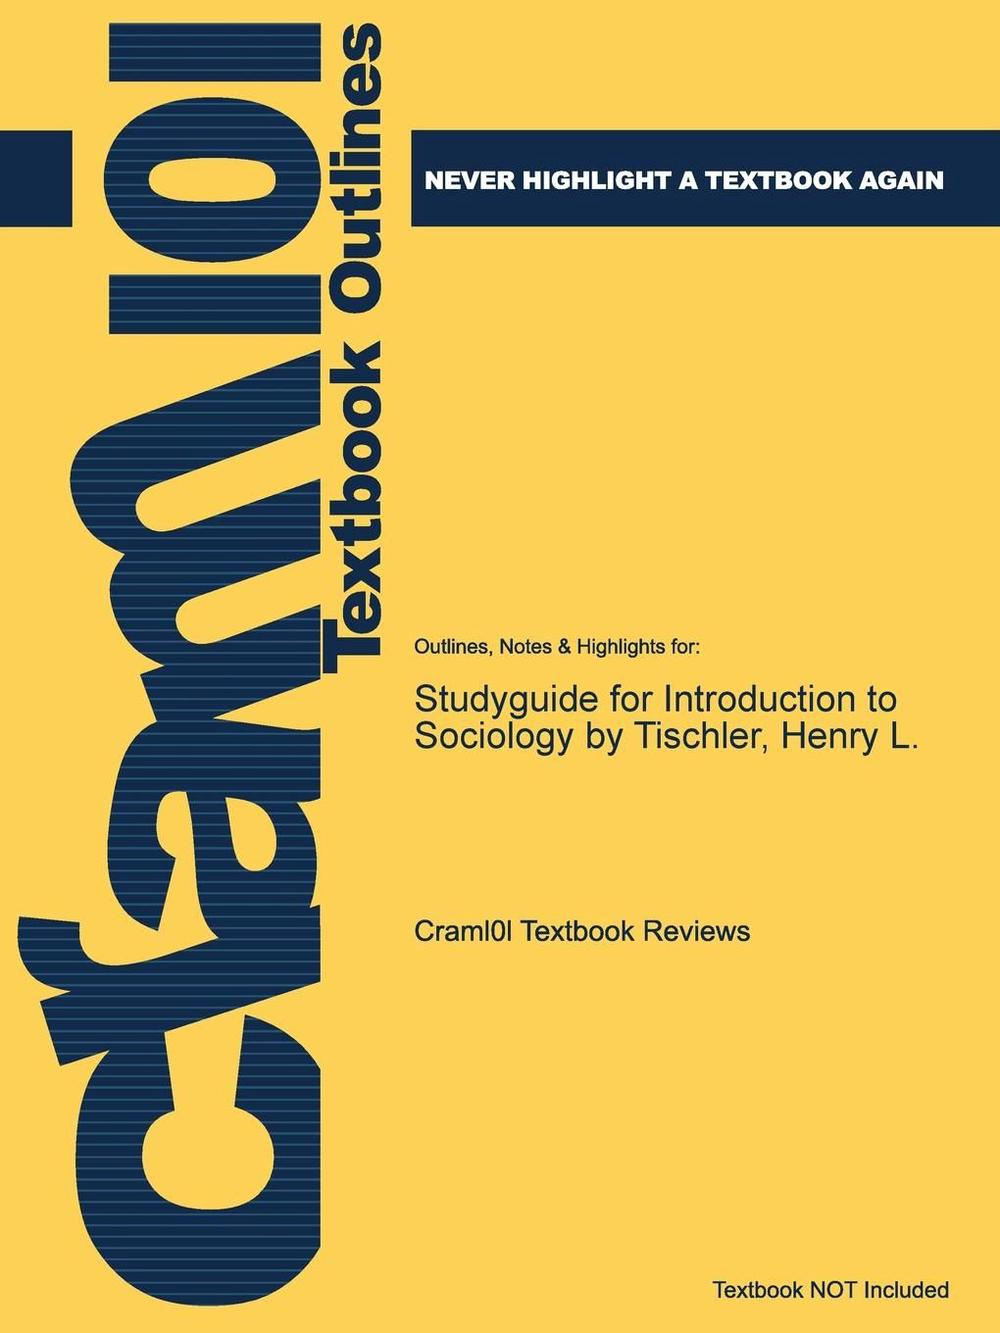 Studyguide For Introduction To Sociology By Tischler - Tischler Introduction To Sociology